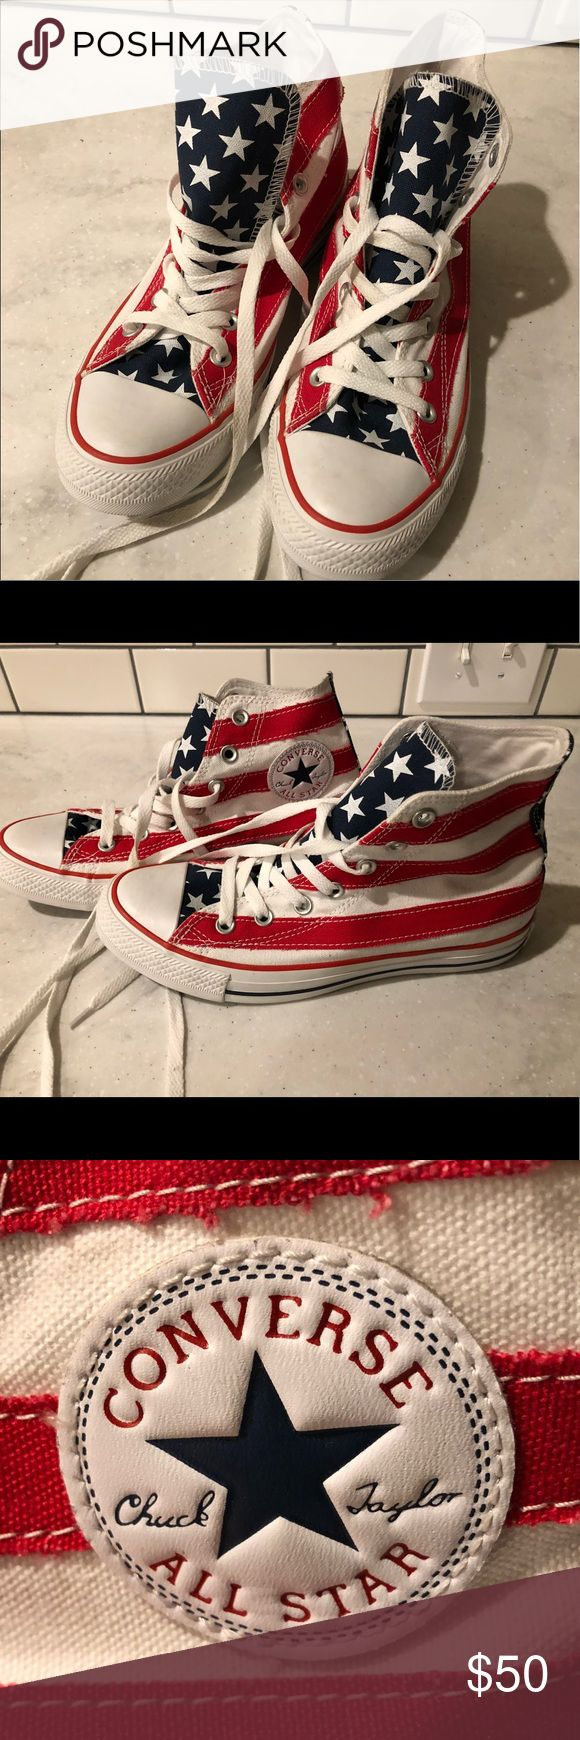 American Flag Converse High Tops American flag converse high tops worn maybe one time around the house. They have sat in a box for three years. These are in brand new perfect condition! Men's-6. Women's-8 Converse Shoes Sneakers